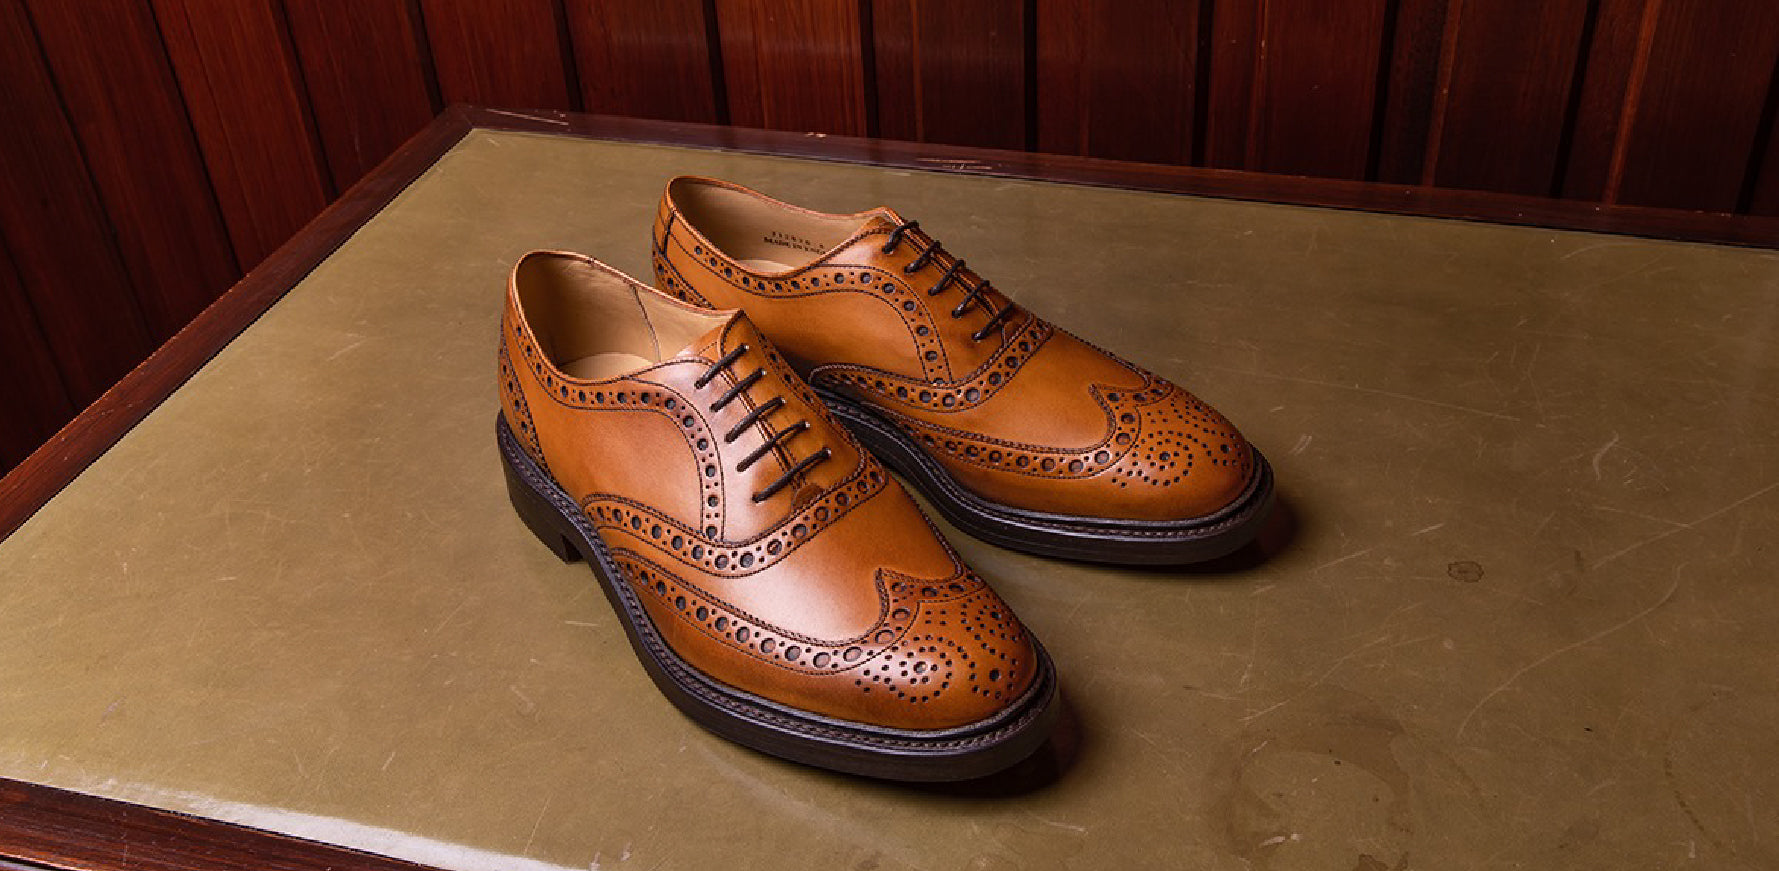 Westfield - Men's Leather Brogues By Barker